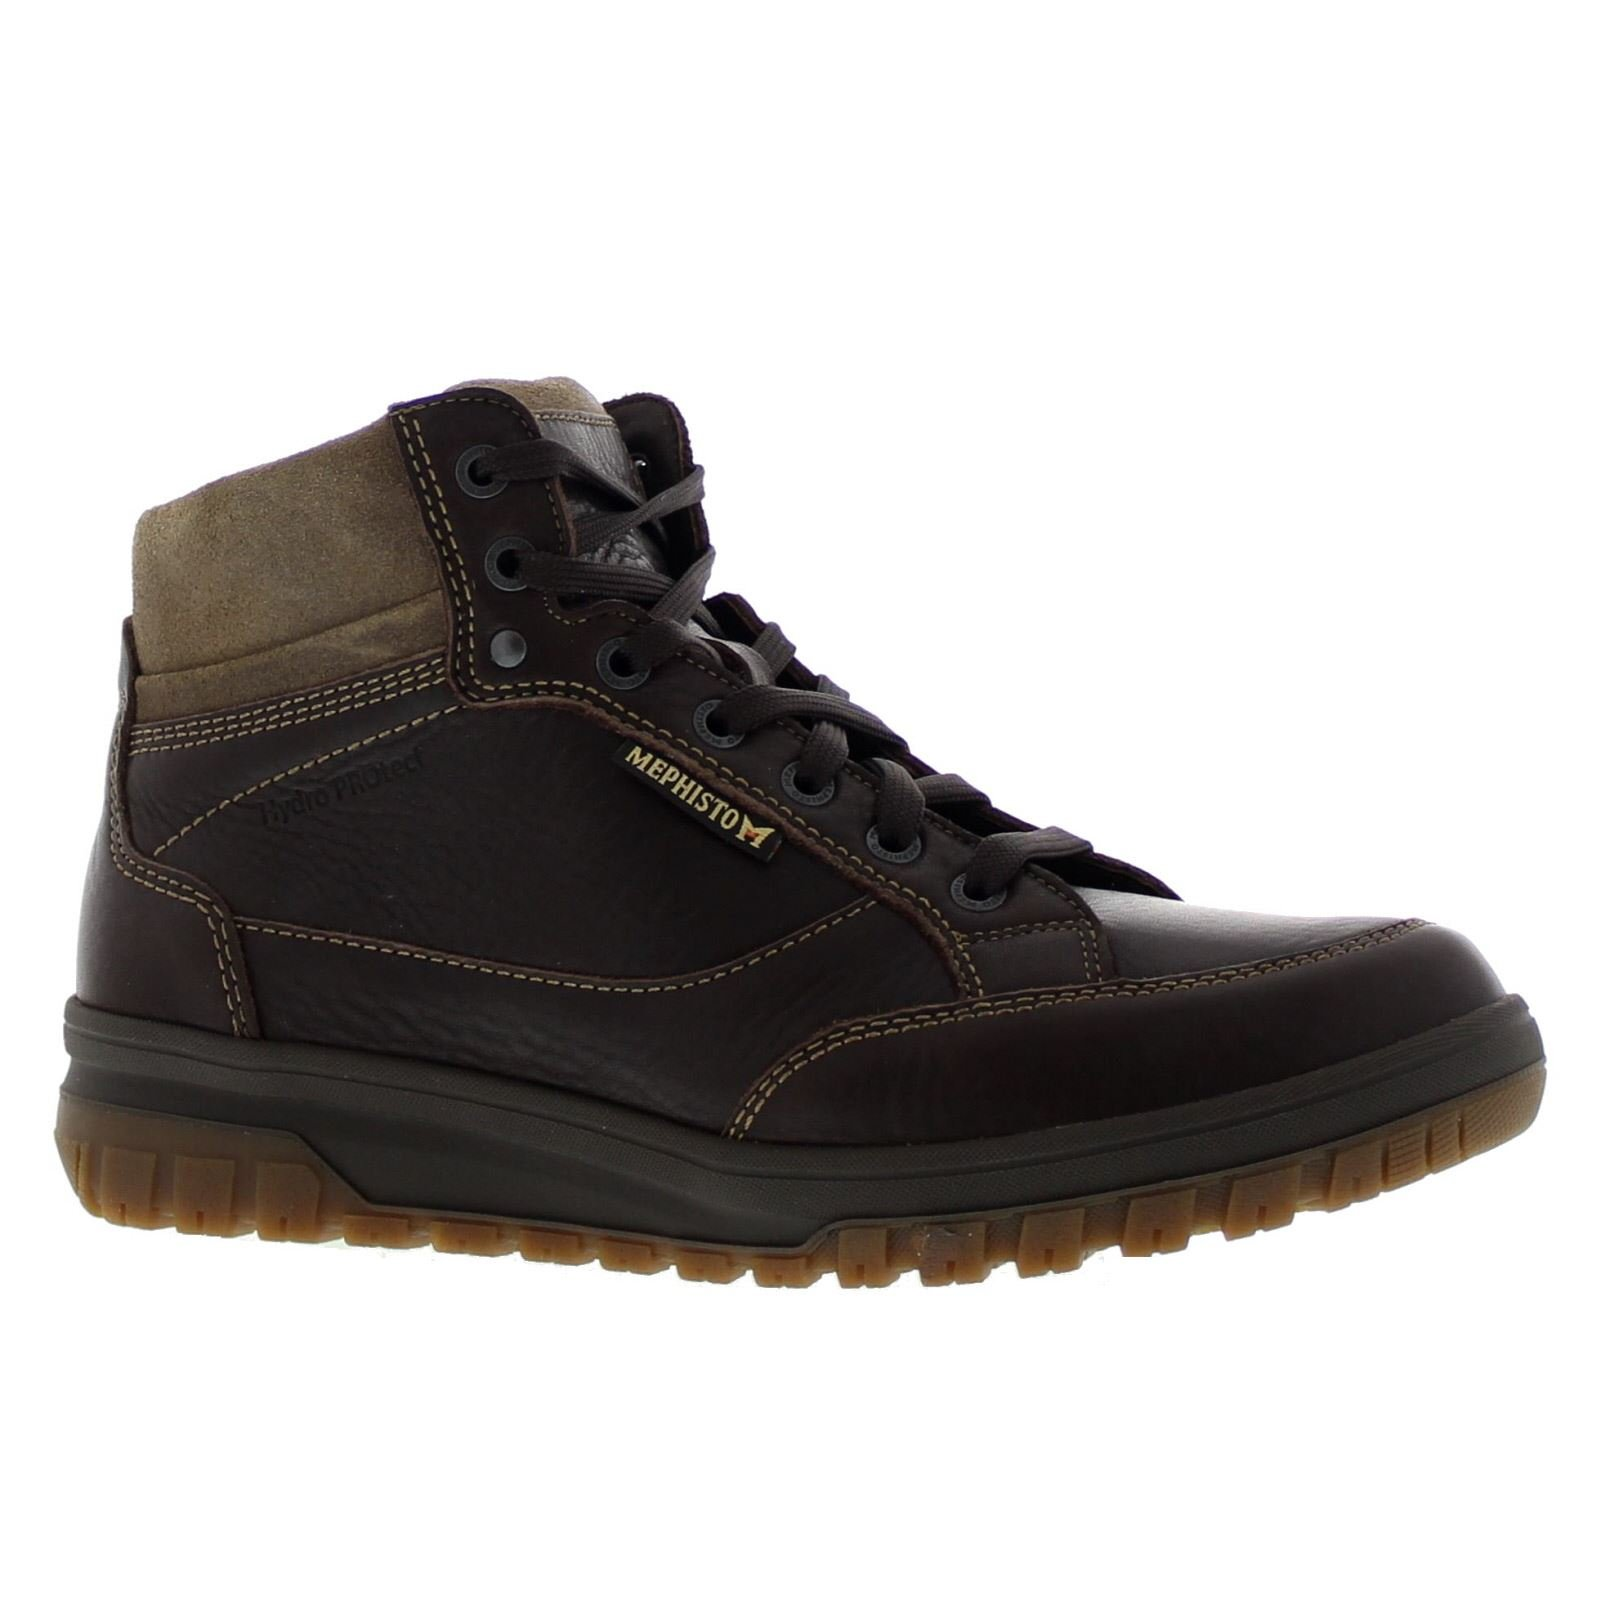 Mephisto Mens Paddy Brown Leather Boots 9.5 US